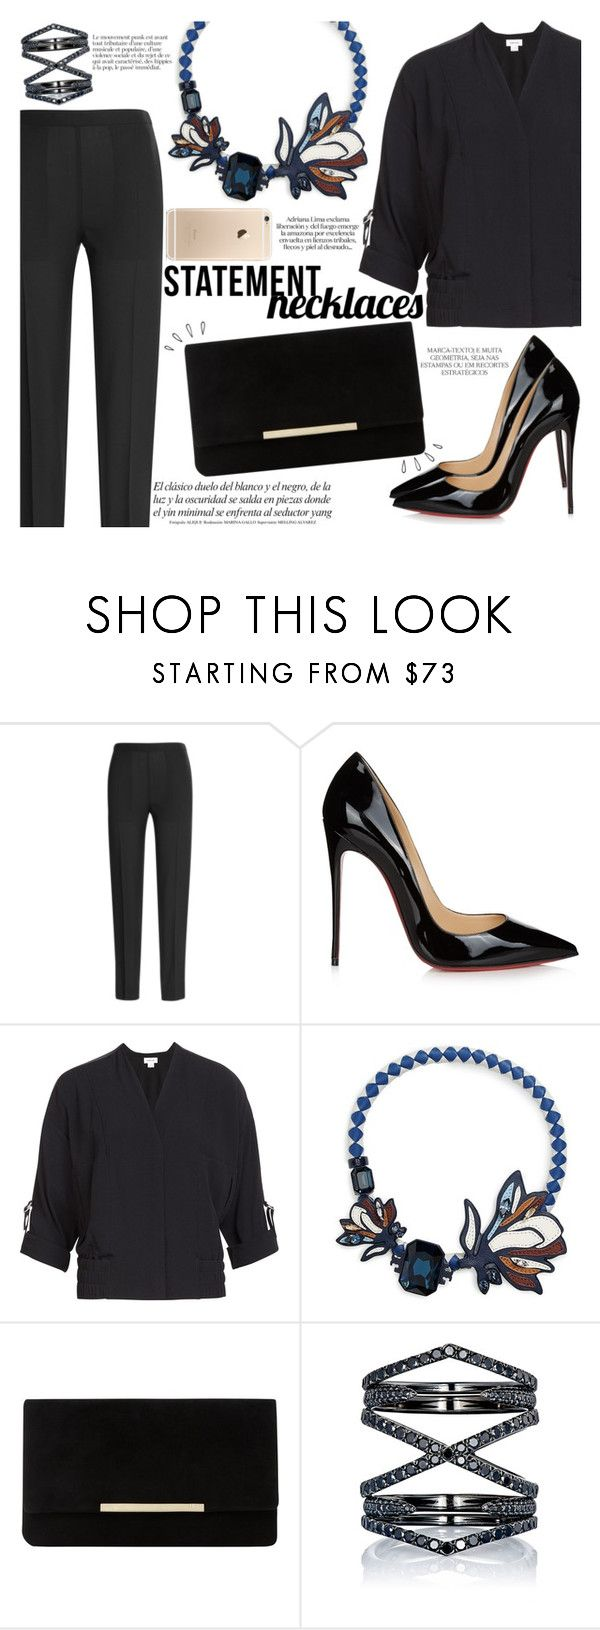 """""""Paramparça Style : Dilara Terzioğlu"""" by igedesubawa ❤ liked on Polyvore featuring Magdalena, Maison Margiela, Christian Louboutin, Helmut Lang, Tory Burch, Dune, Eva Fehren, Old Navy, contestentry and polyvorecontest"""